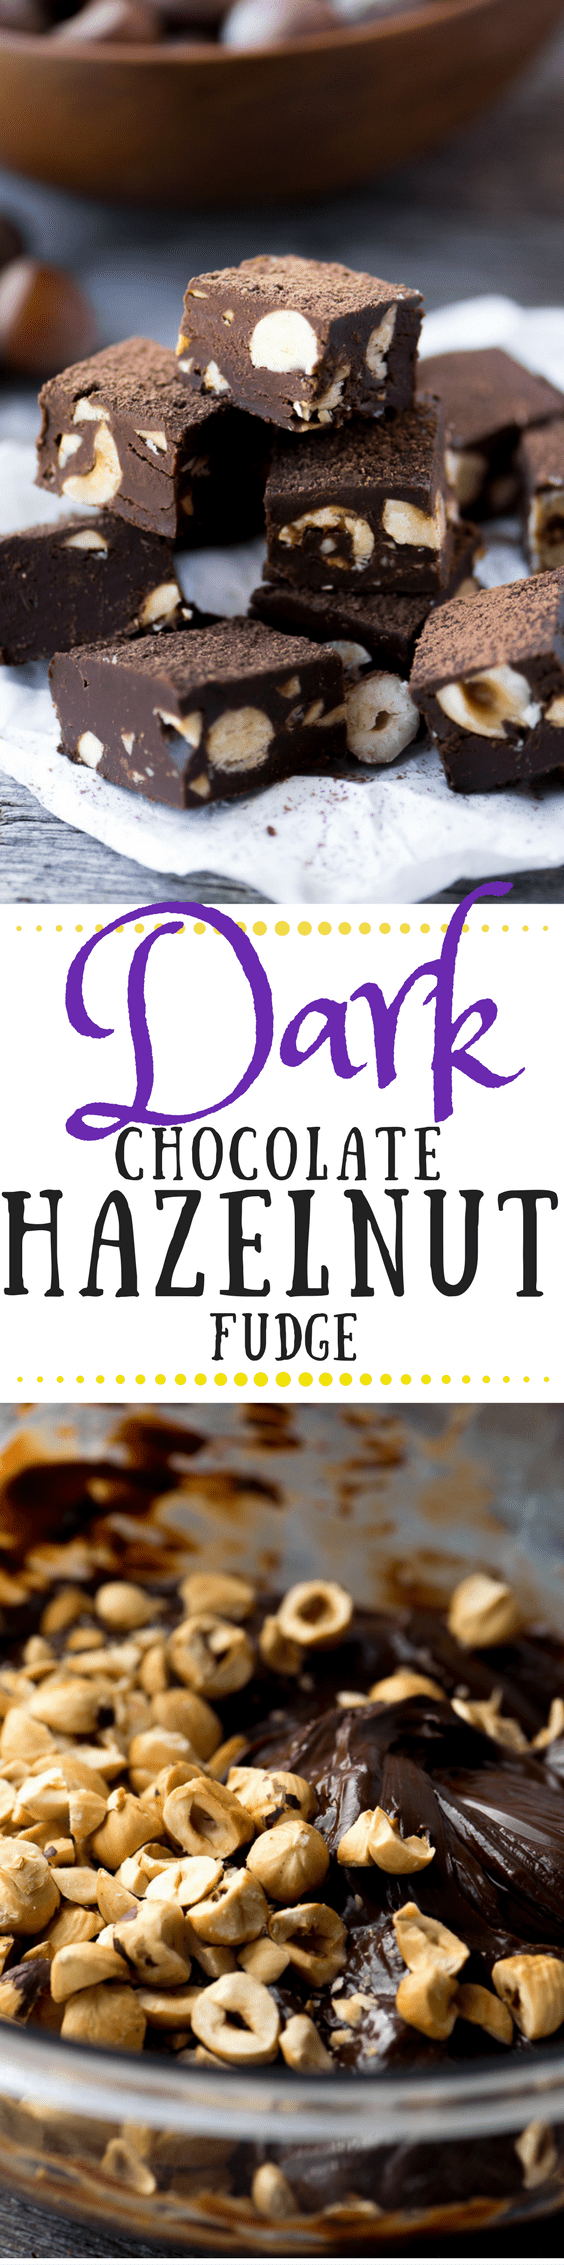 Dark Chocolate Hazelnut Fudge capitalizes on one of the world's great flavor combos ~ this homemade fudge is sophisticated, but quick and easy, and definitely giftable ~ theviewfromgreatisland.com